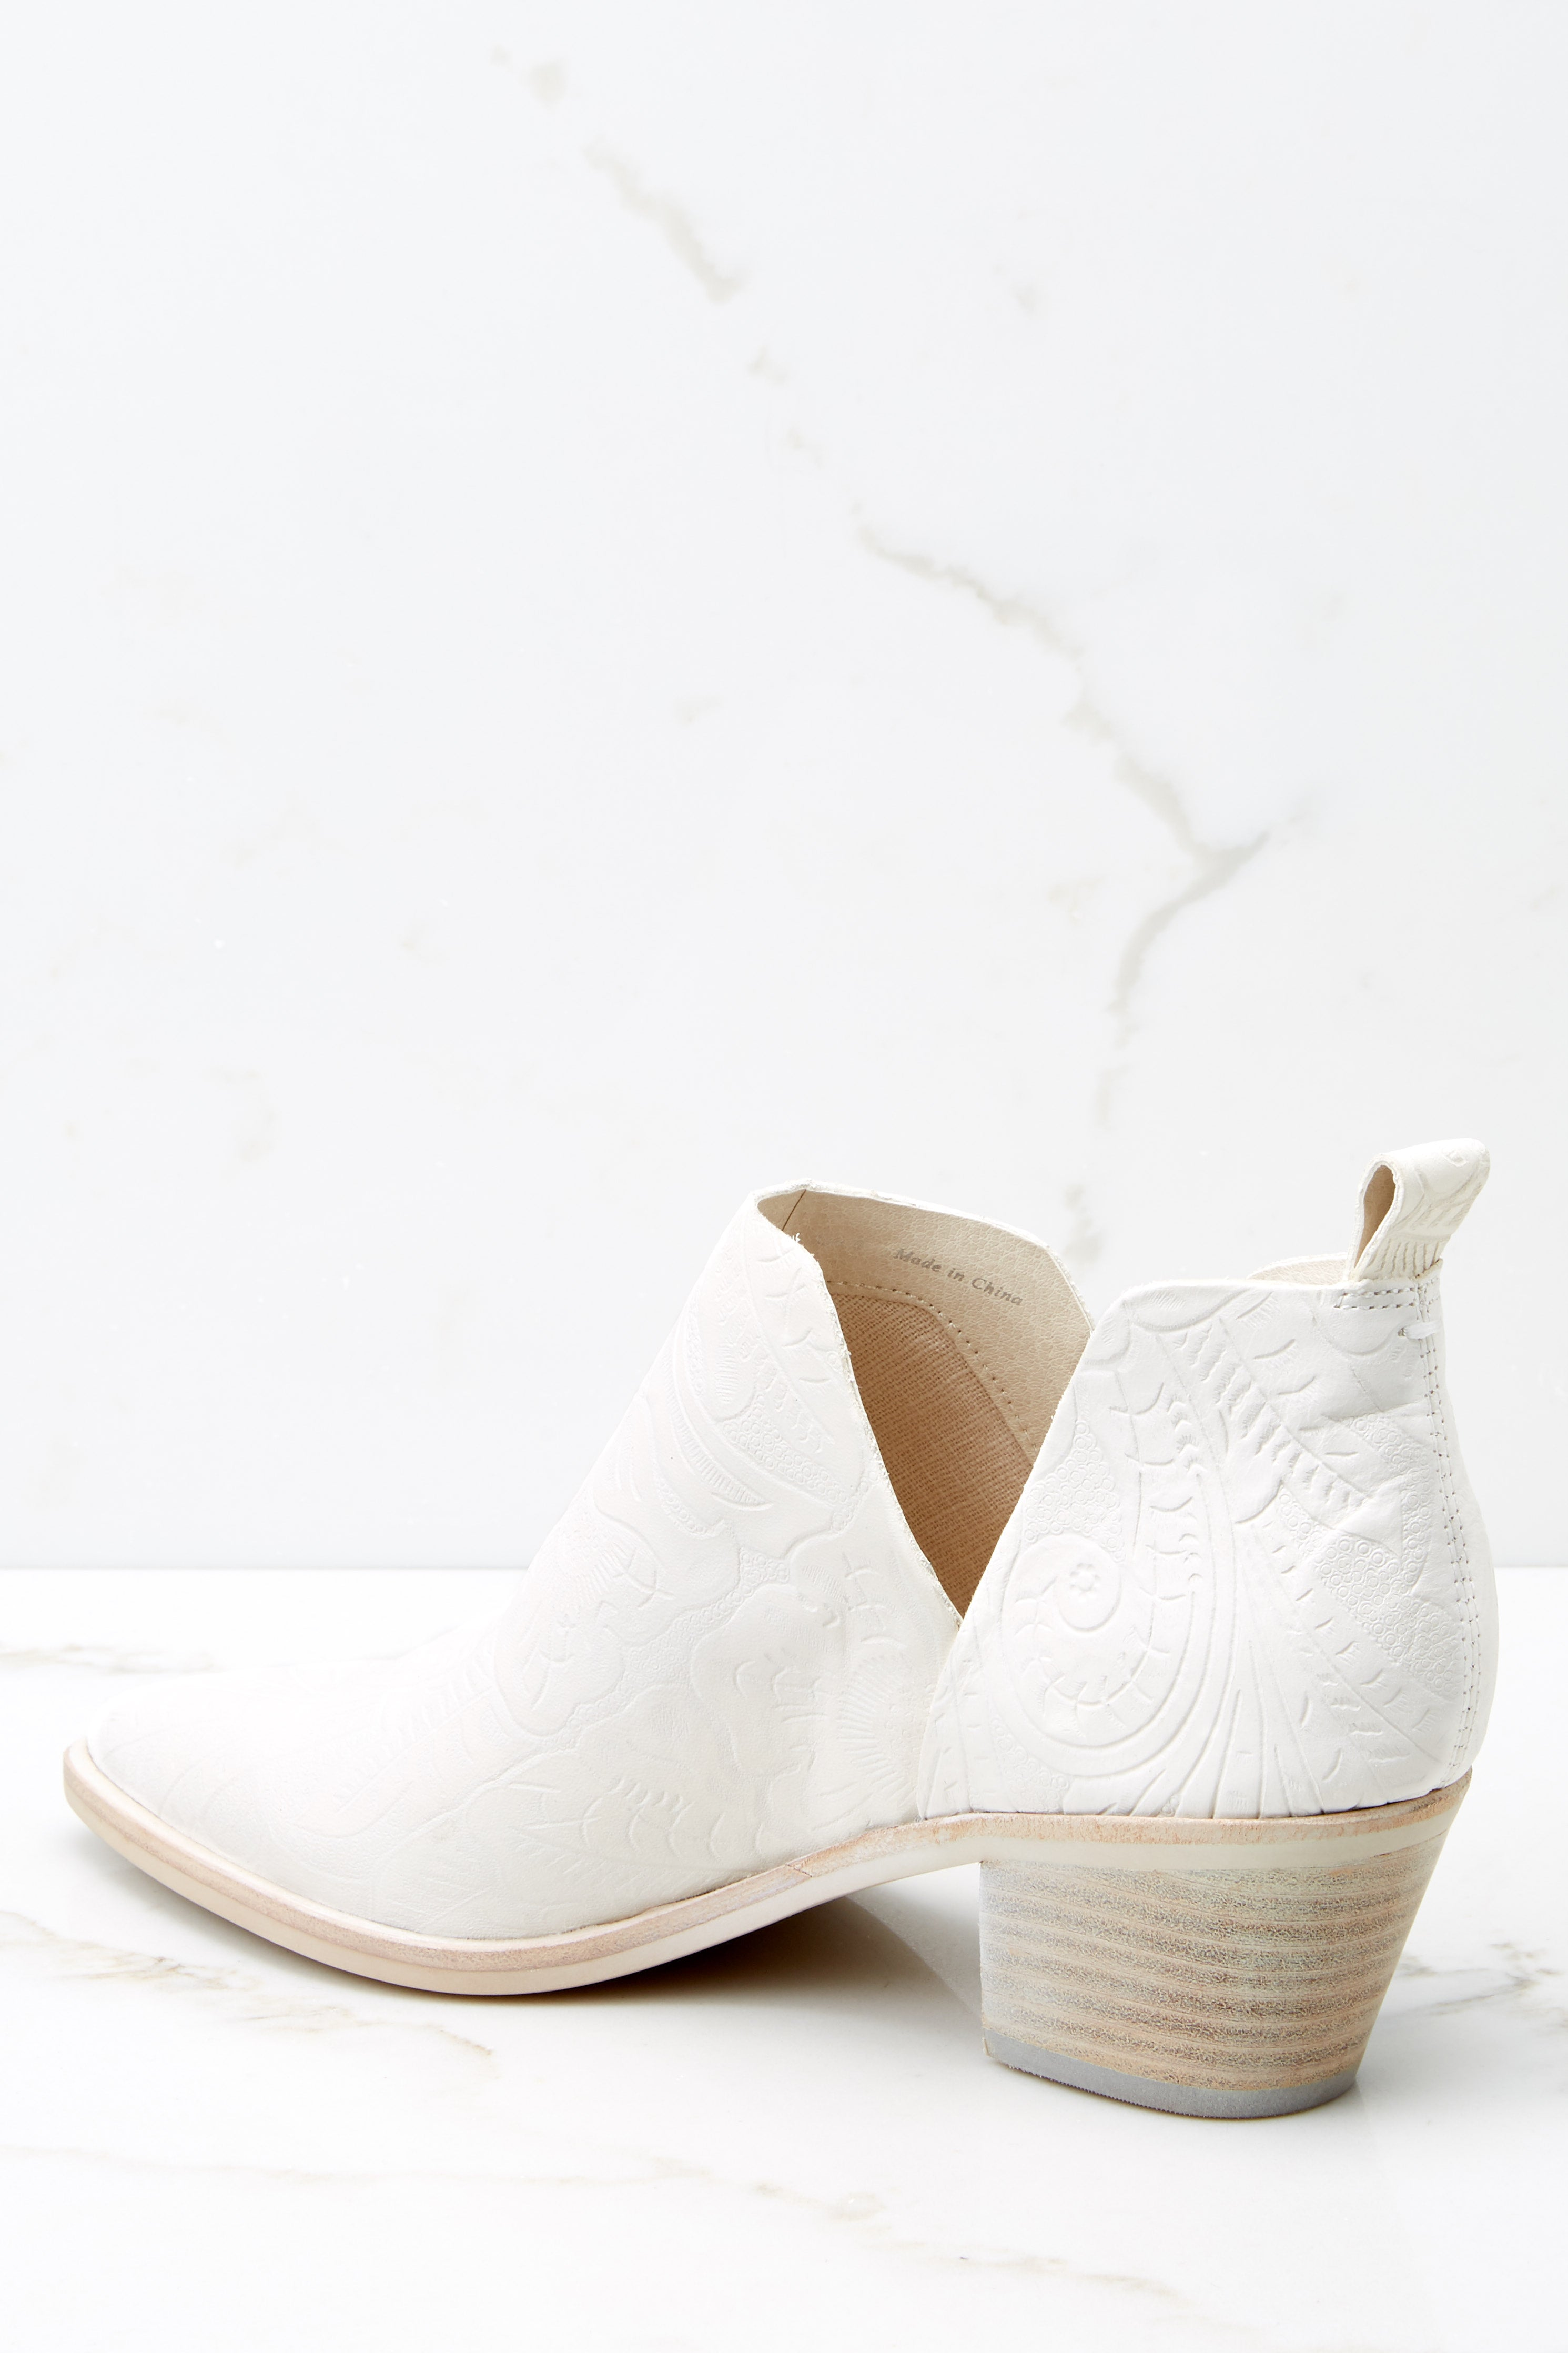 5 Sonni White Embossed Booties at reddress.com